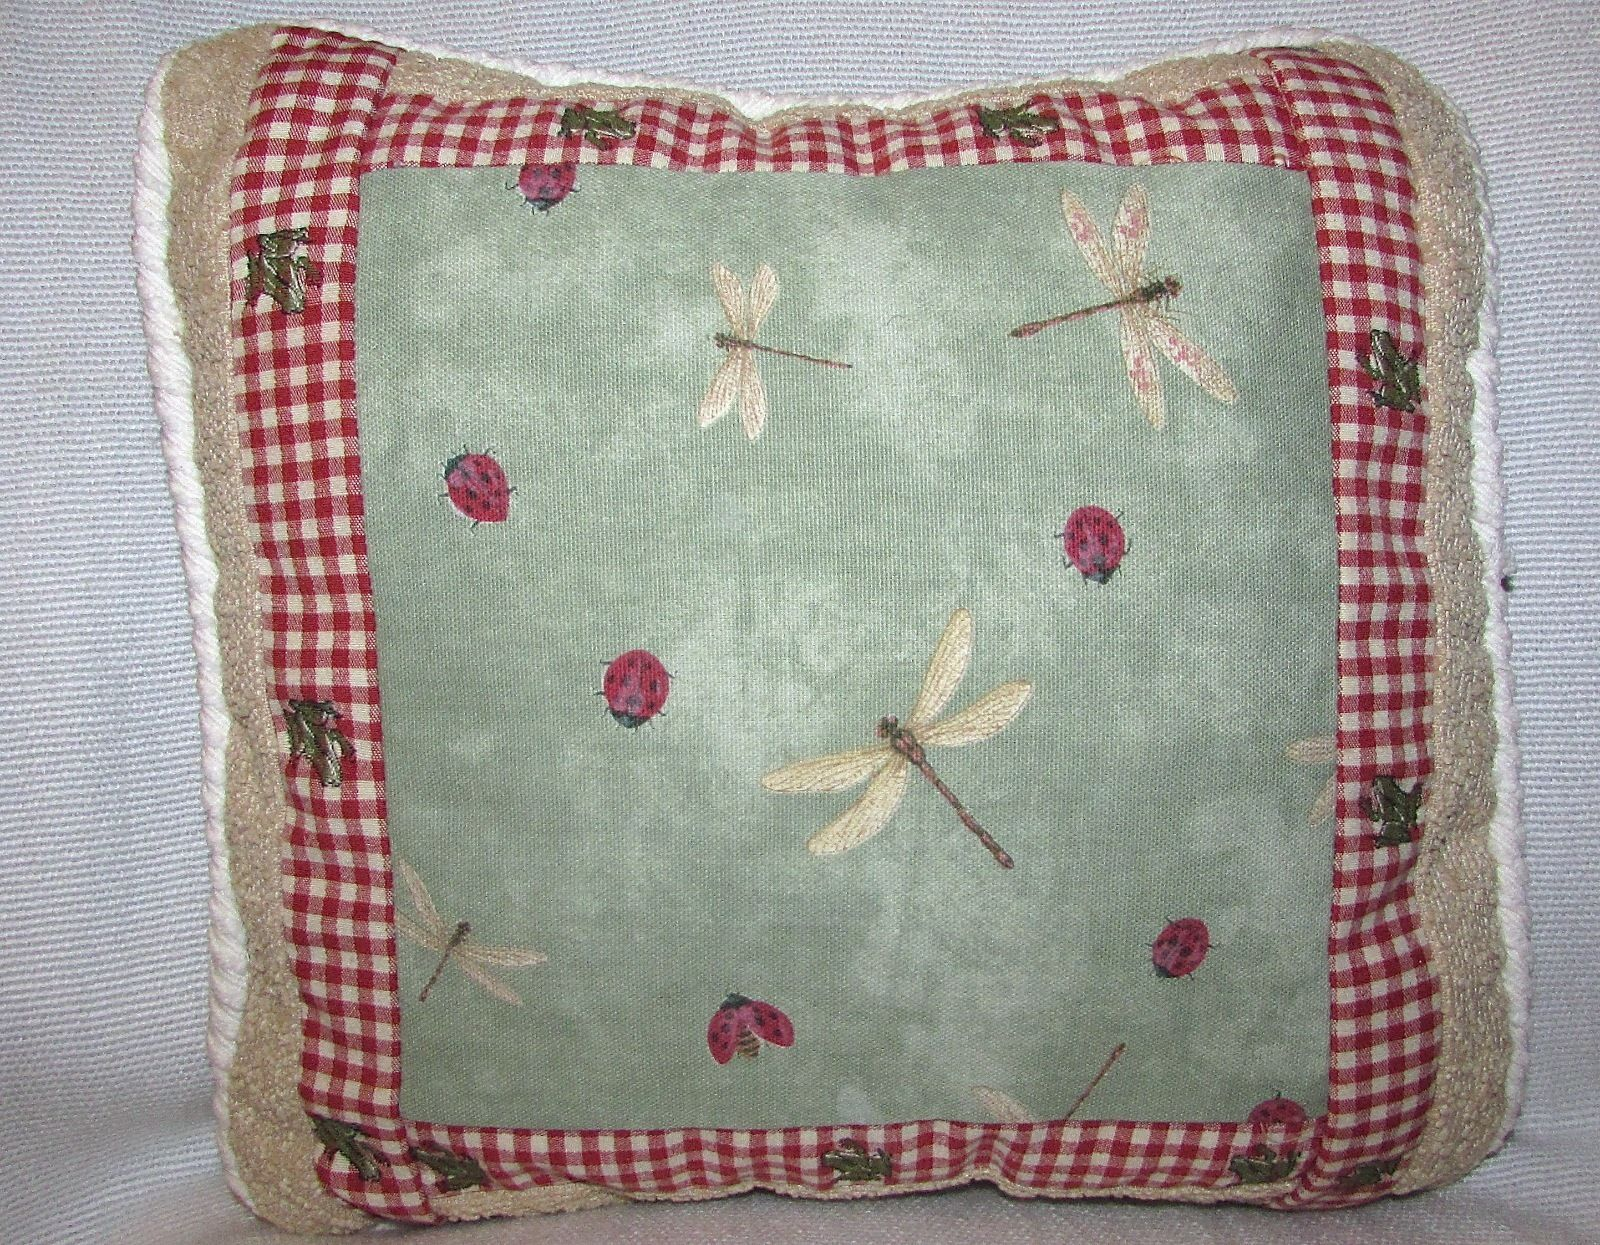 Throw Pillows 12 X 12 : Dragonfly, Lady Bug & Frog Decorative Square Cotton Throw Pillow 12